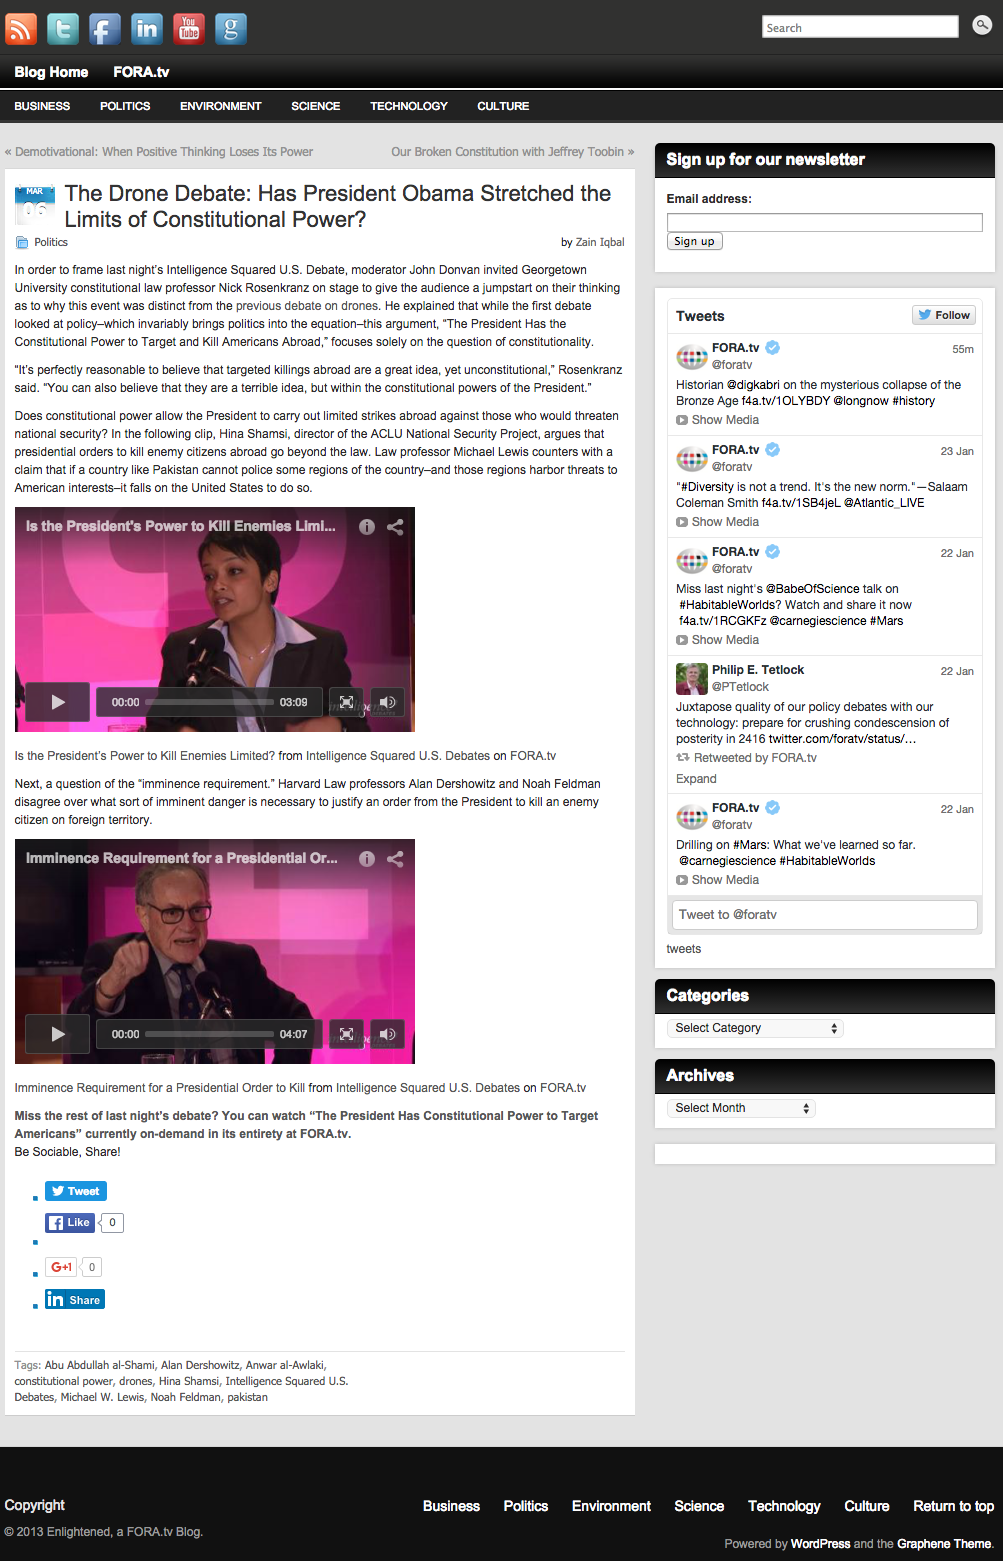 screencapture-enarchive-fora-tv-2014-03-the-drone-debate-has-president-obama-stretched-the-limits-of-constitutional-power.png